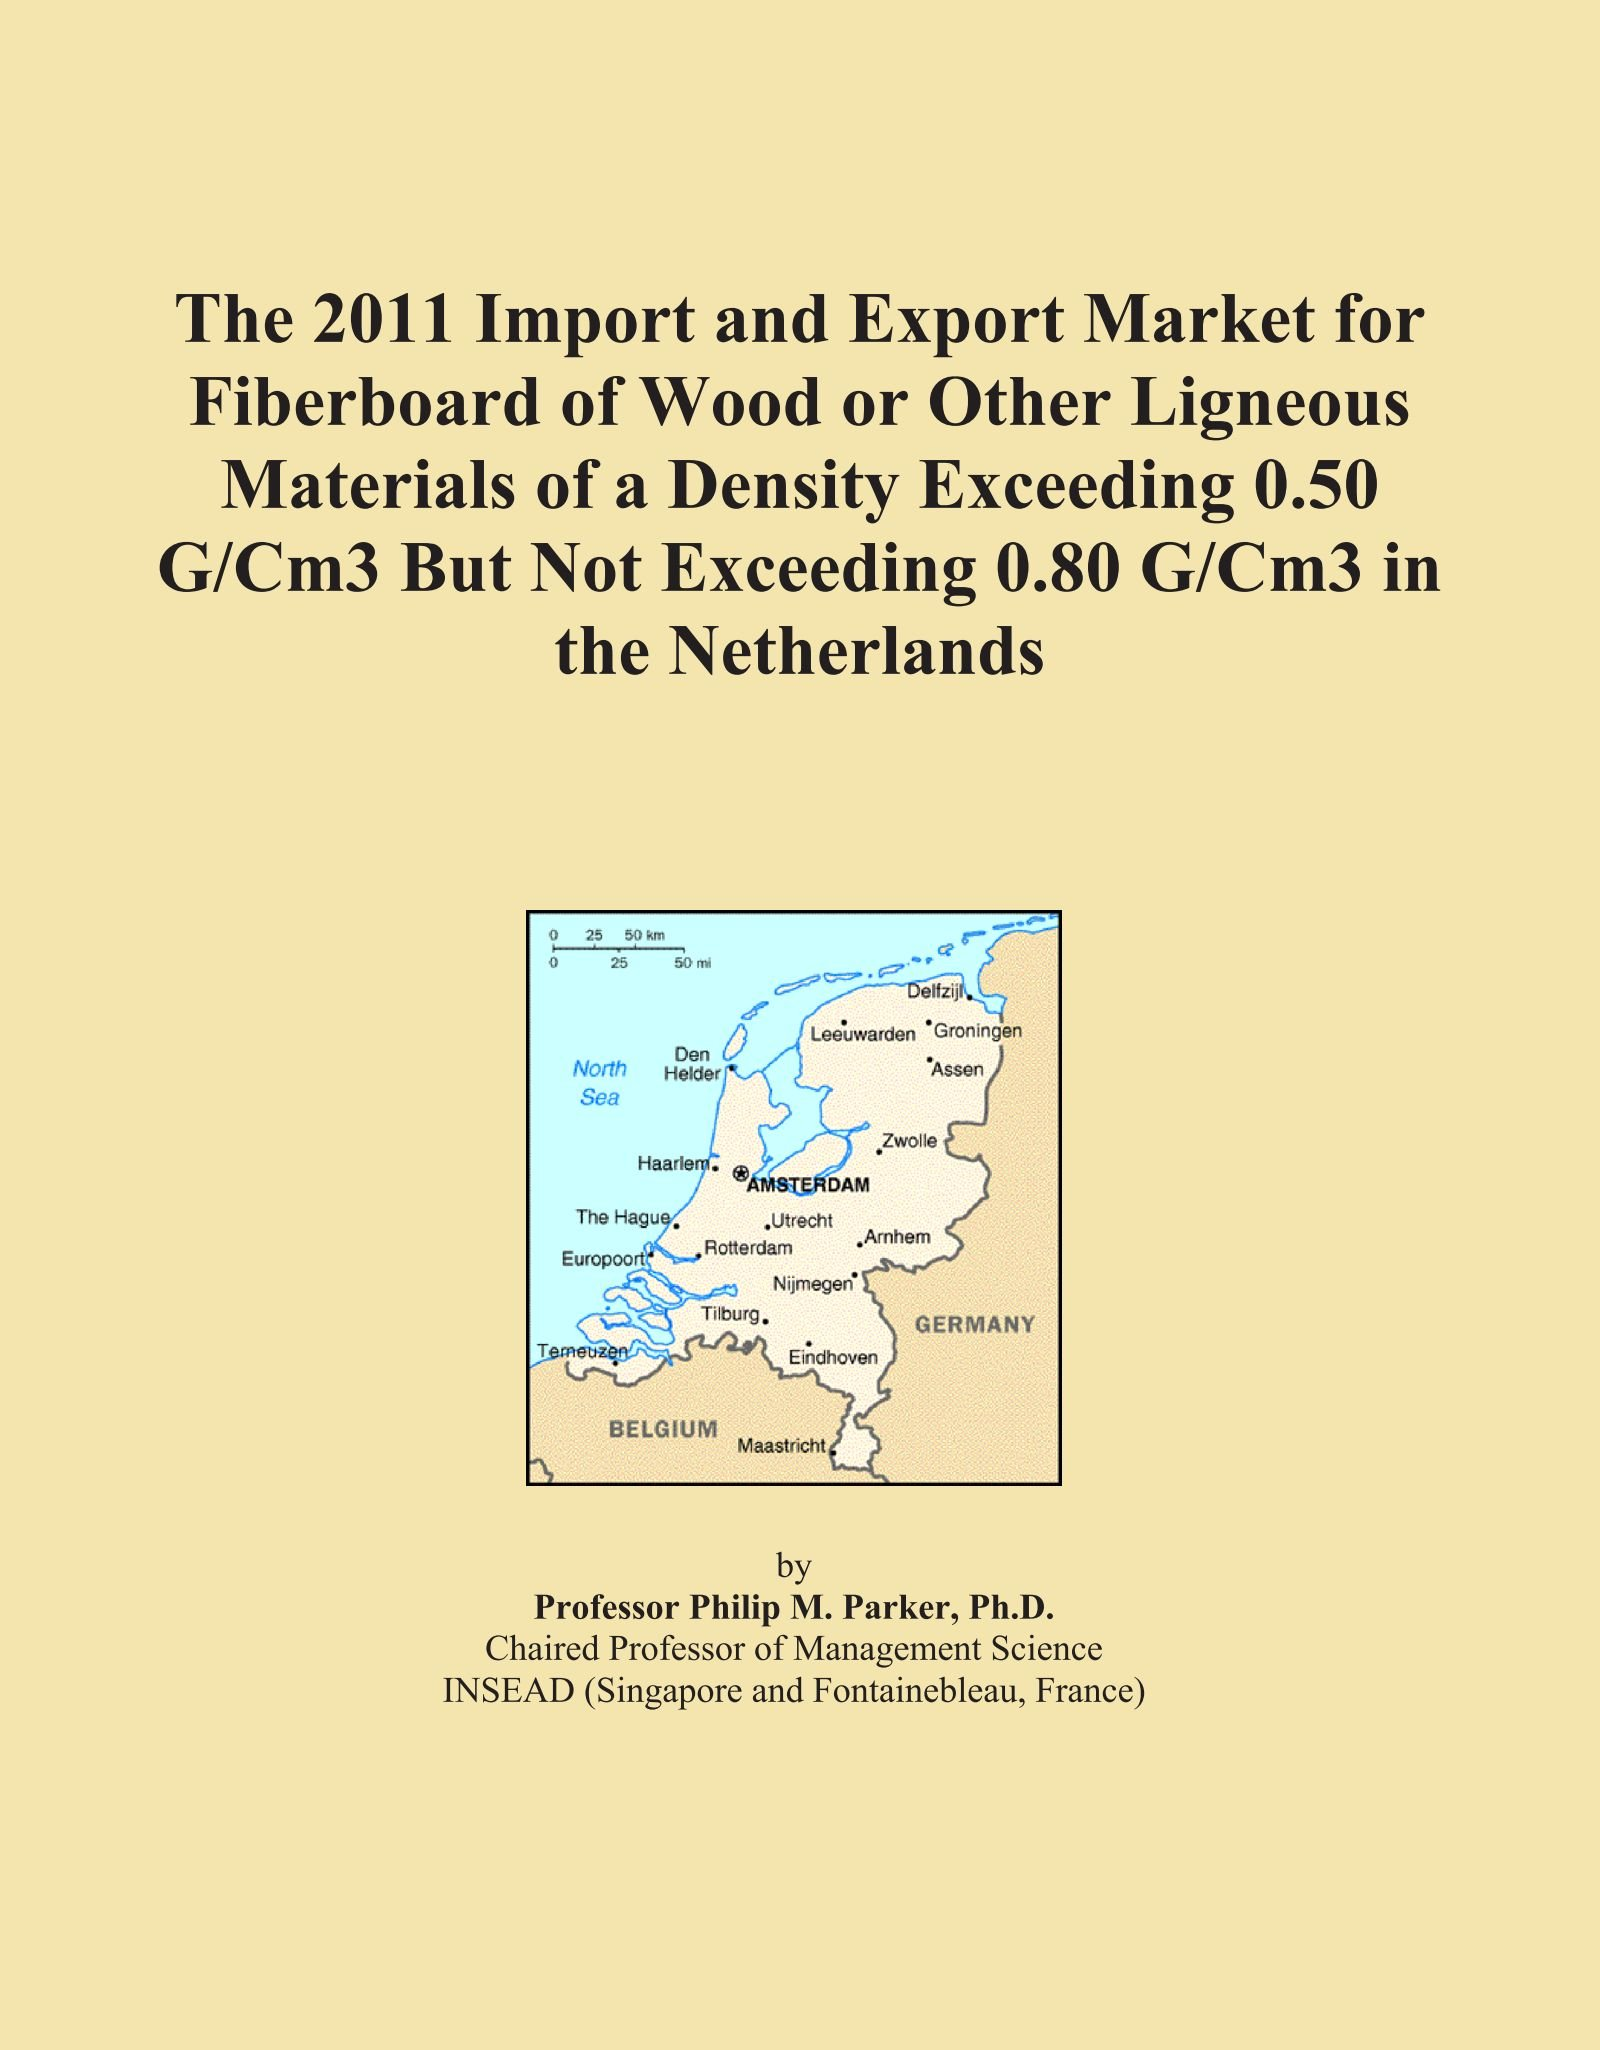 Download The 2011 Import and Export Market for Fiberboard of Wood or Other Ligneous Materials of a Density Exceeding 0.50 G/Cm3 But Not Exceeding 0.80 G/Cm3 in the Netherlands pdf epub